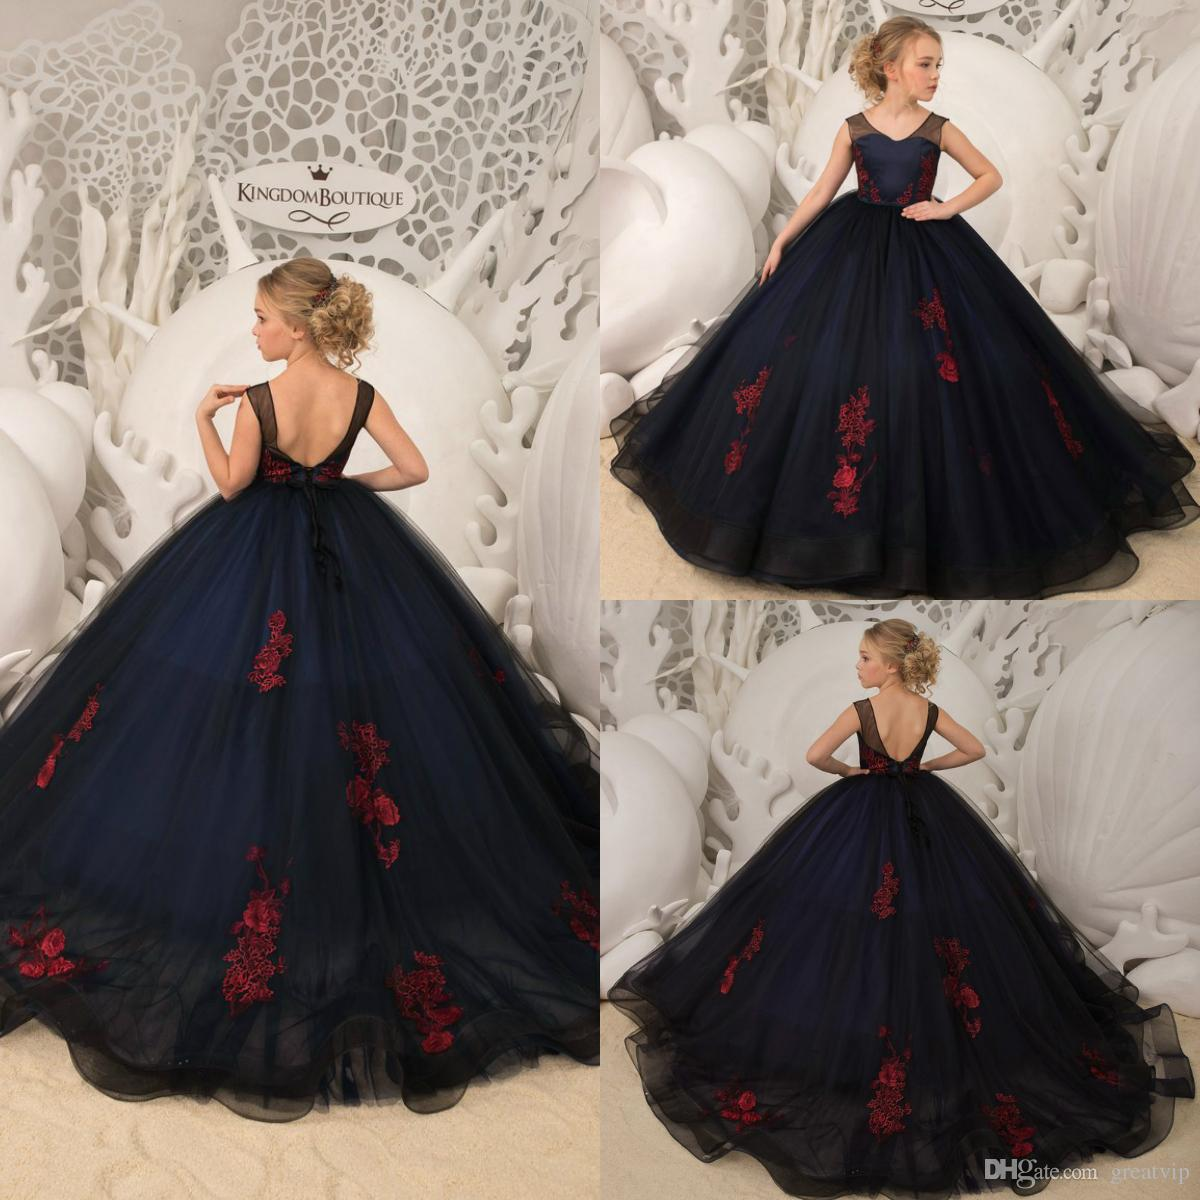 b2b5a55219a5 Navy Blue Flower Girl Dresses Red Appliques Backless Girls Pagenat Gowns  Plus Size Princess Toddlers Birthday Party Dress For Wedding Girls Dressy  Dresses ...